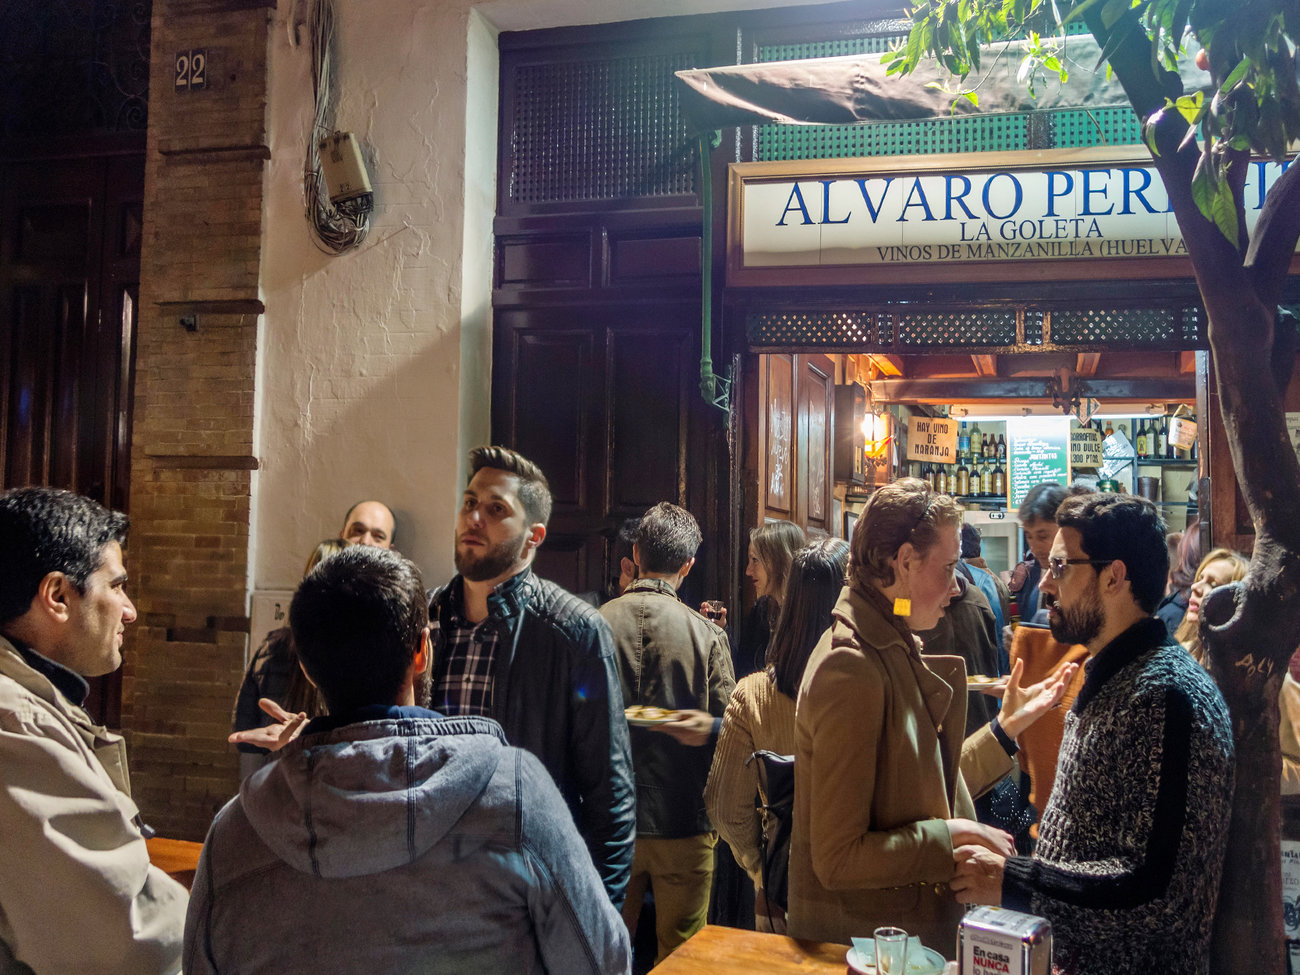 La Goleta Bar in Seville